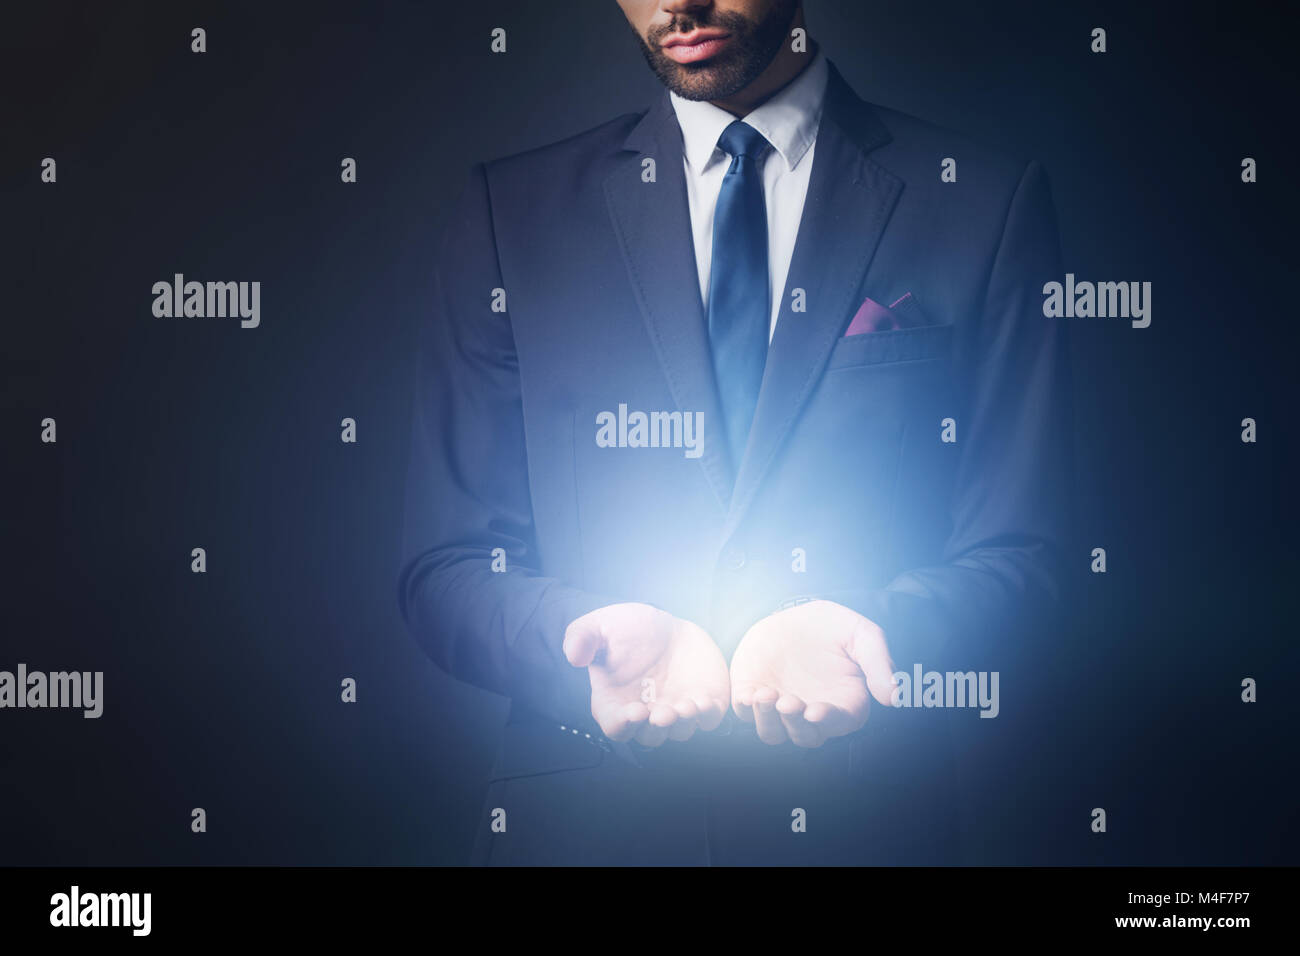 Light radiating from businessman hands - Stock Image